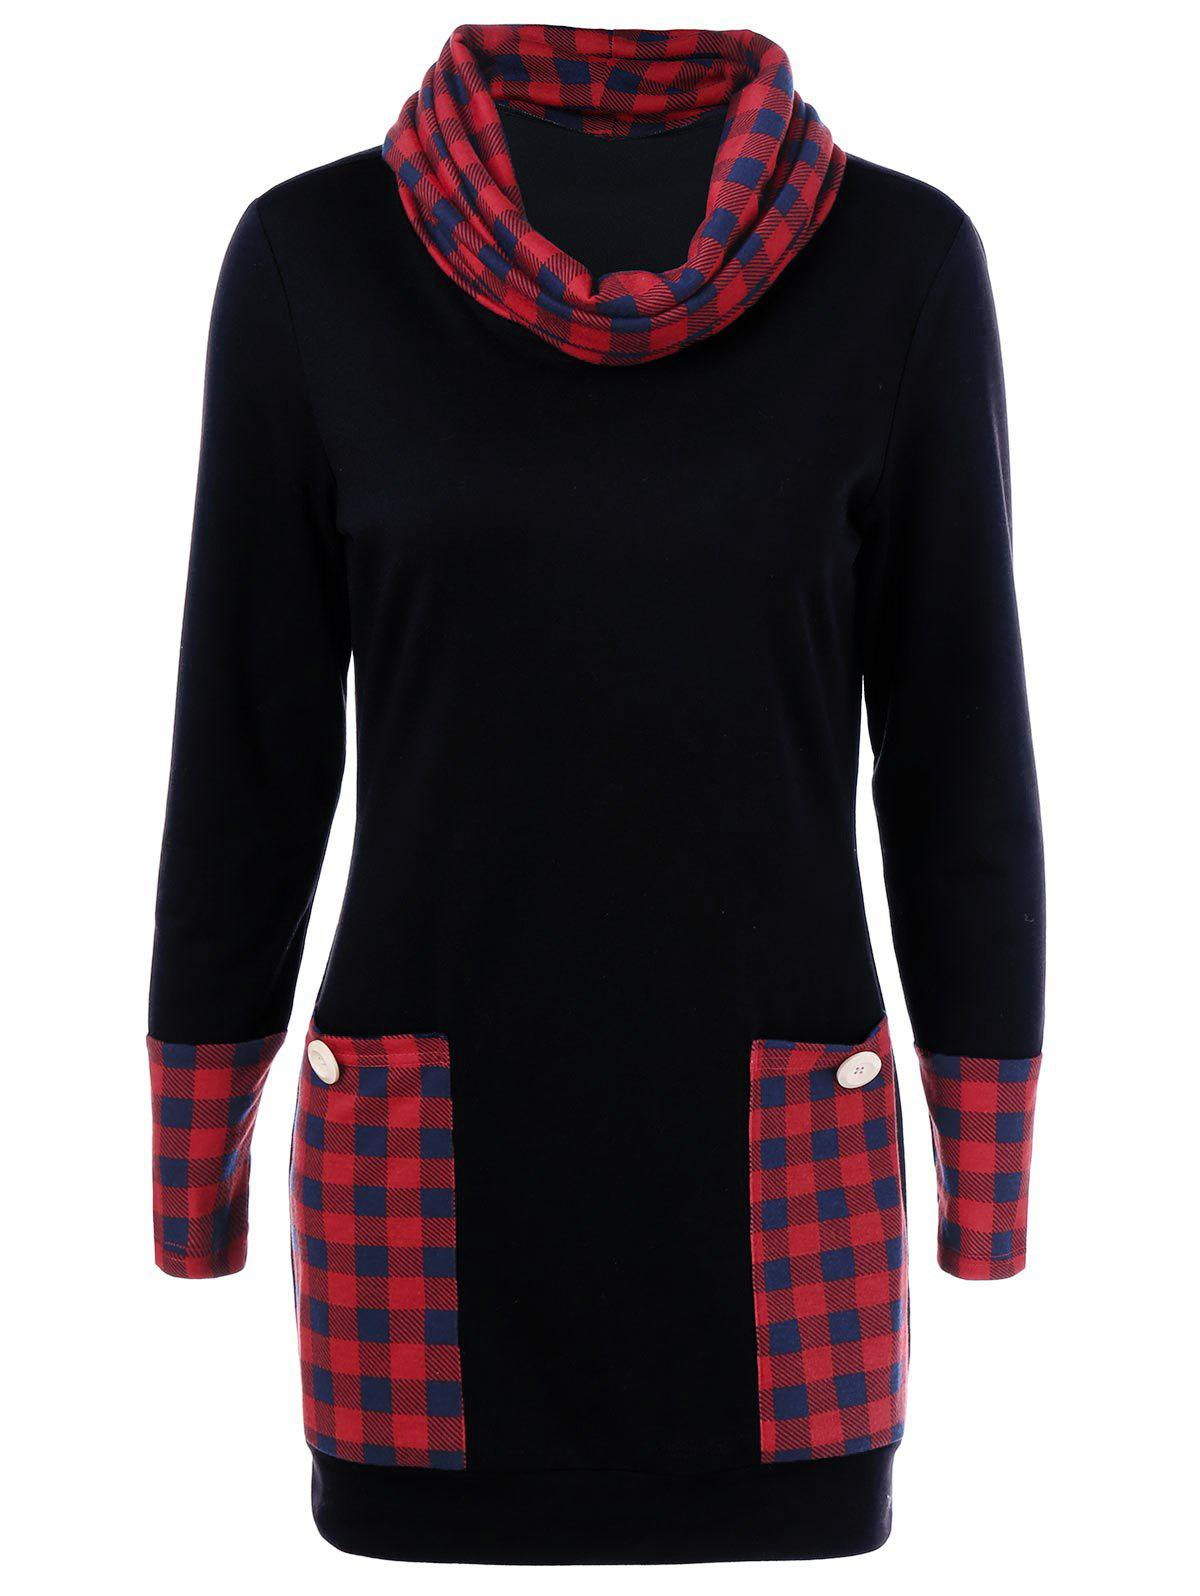 Chic Casual Cowl Neck Plaid Trim Dress with Pockets